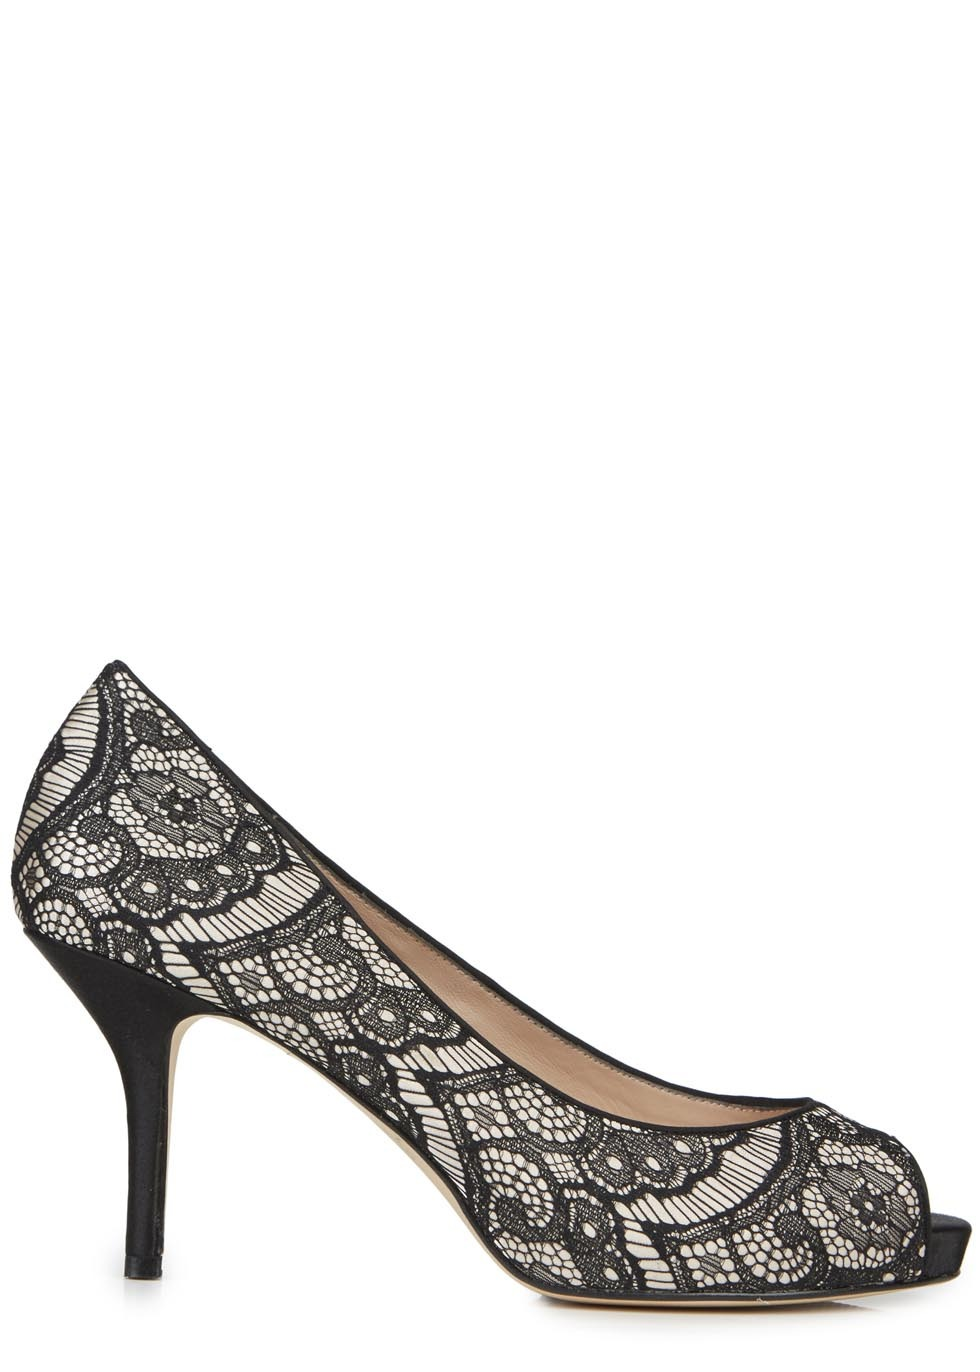 Chiswick Monochrome Satin And Lace Pumps - secondary colour: ivory/cream; predominant colour: black; occasions: occasion; material: leather; heel height: high; heel: stiletto; toe: open toe/peeptoe; style: courts; finish: plain; pattern: patterned/print; embellishment: lace; season: s/s 2014